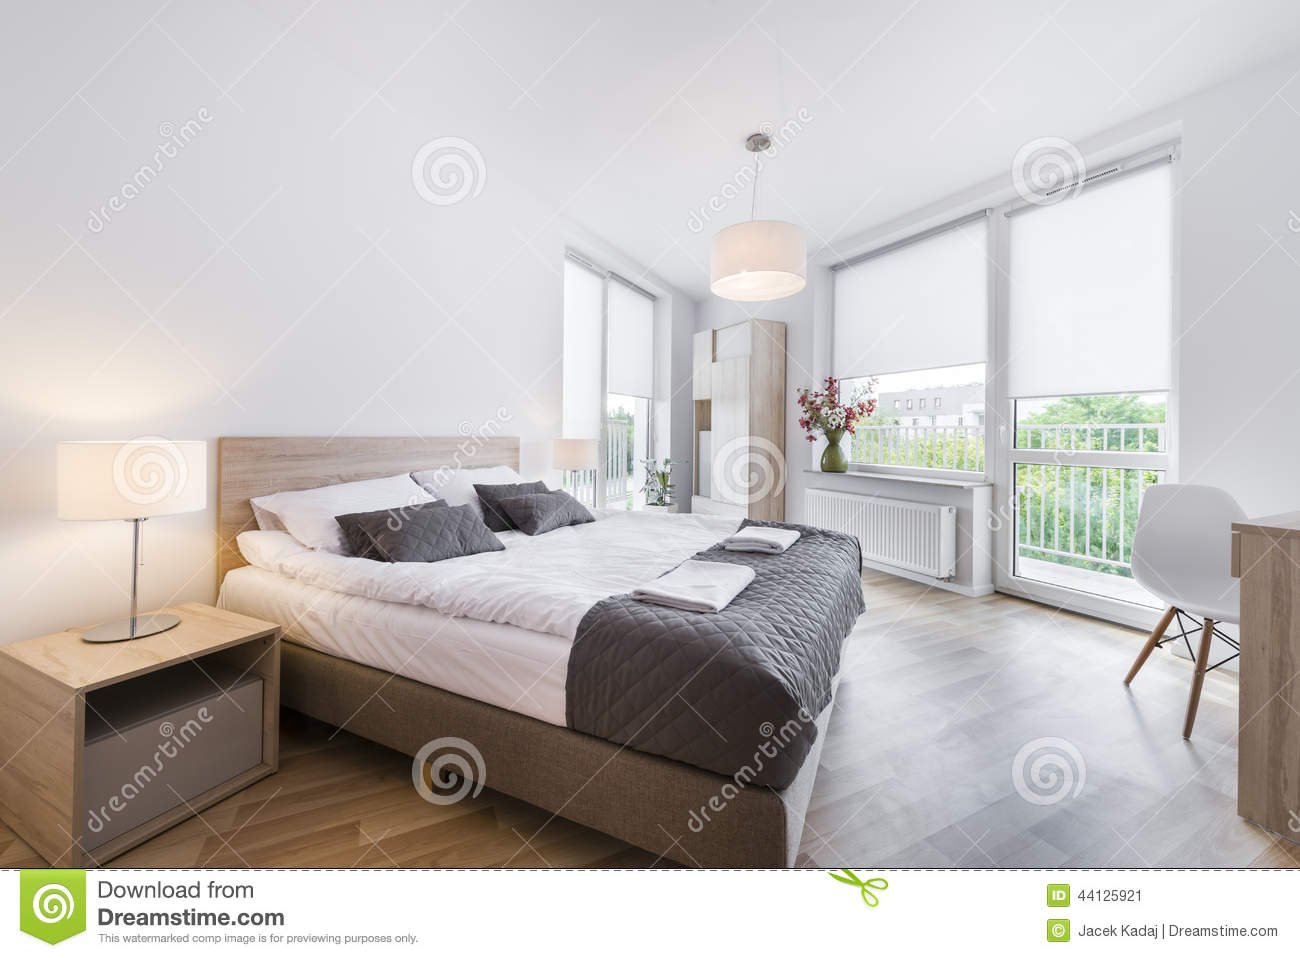 Modern And Comfortable Bedroom Interior Design Stock Image - Image ...